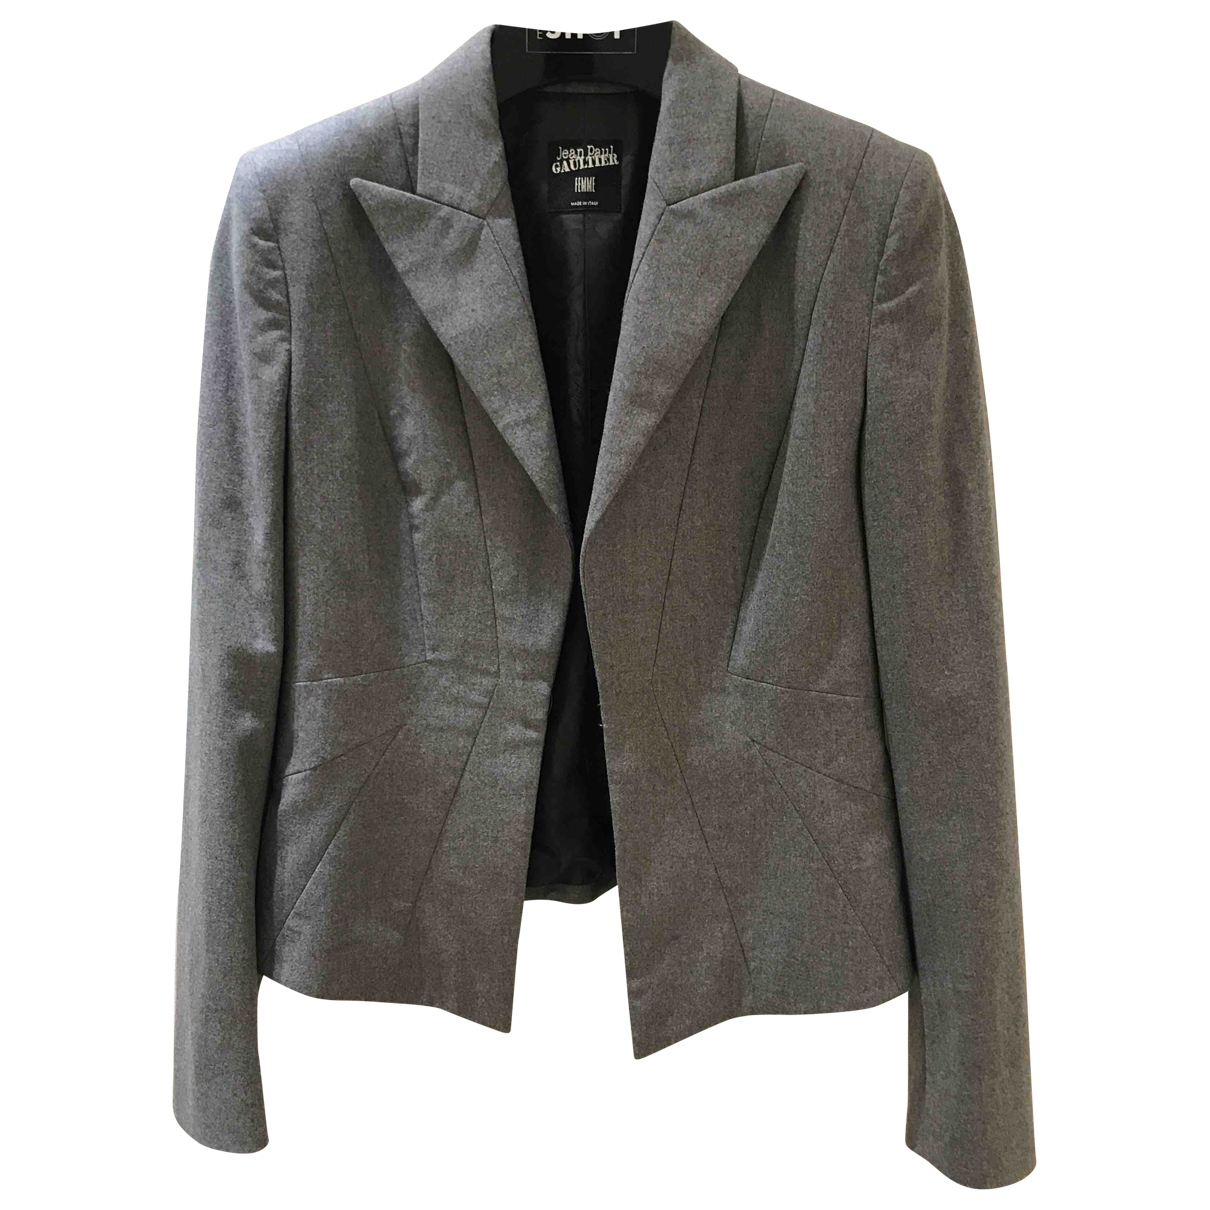 Jean Paul Gaultier \N Grey Wool jacket for Women 38 FR